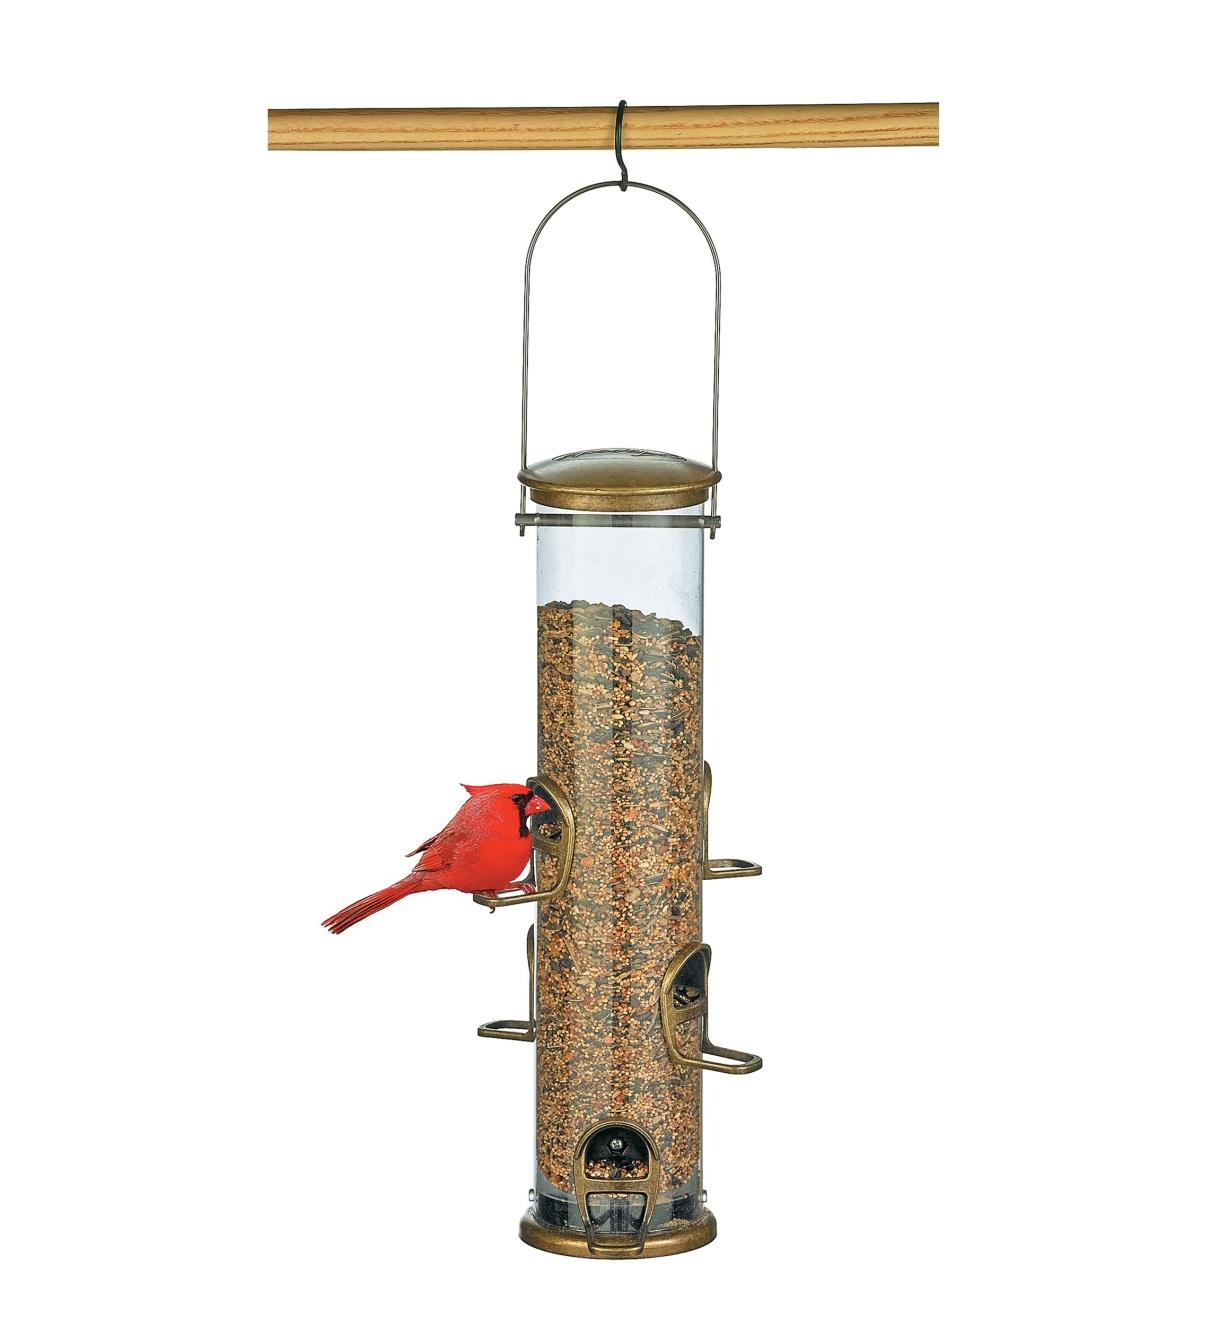 AG320 - Large 6-Port Quick-Clean Tube Songbird Feeder, 3 1/2 qt.